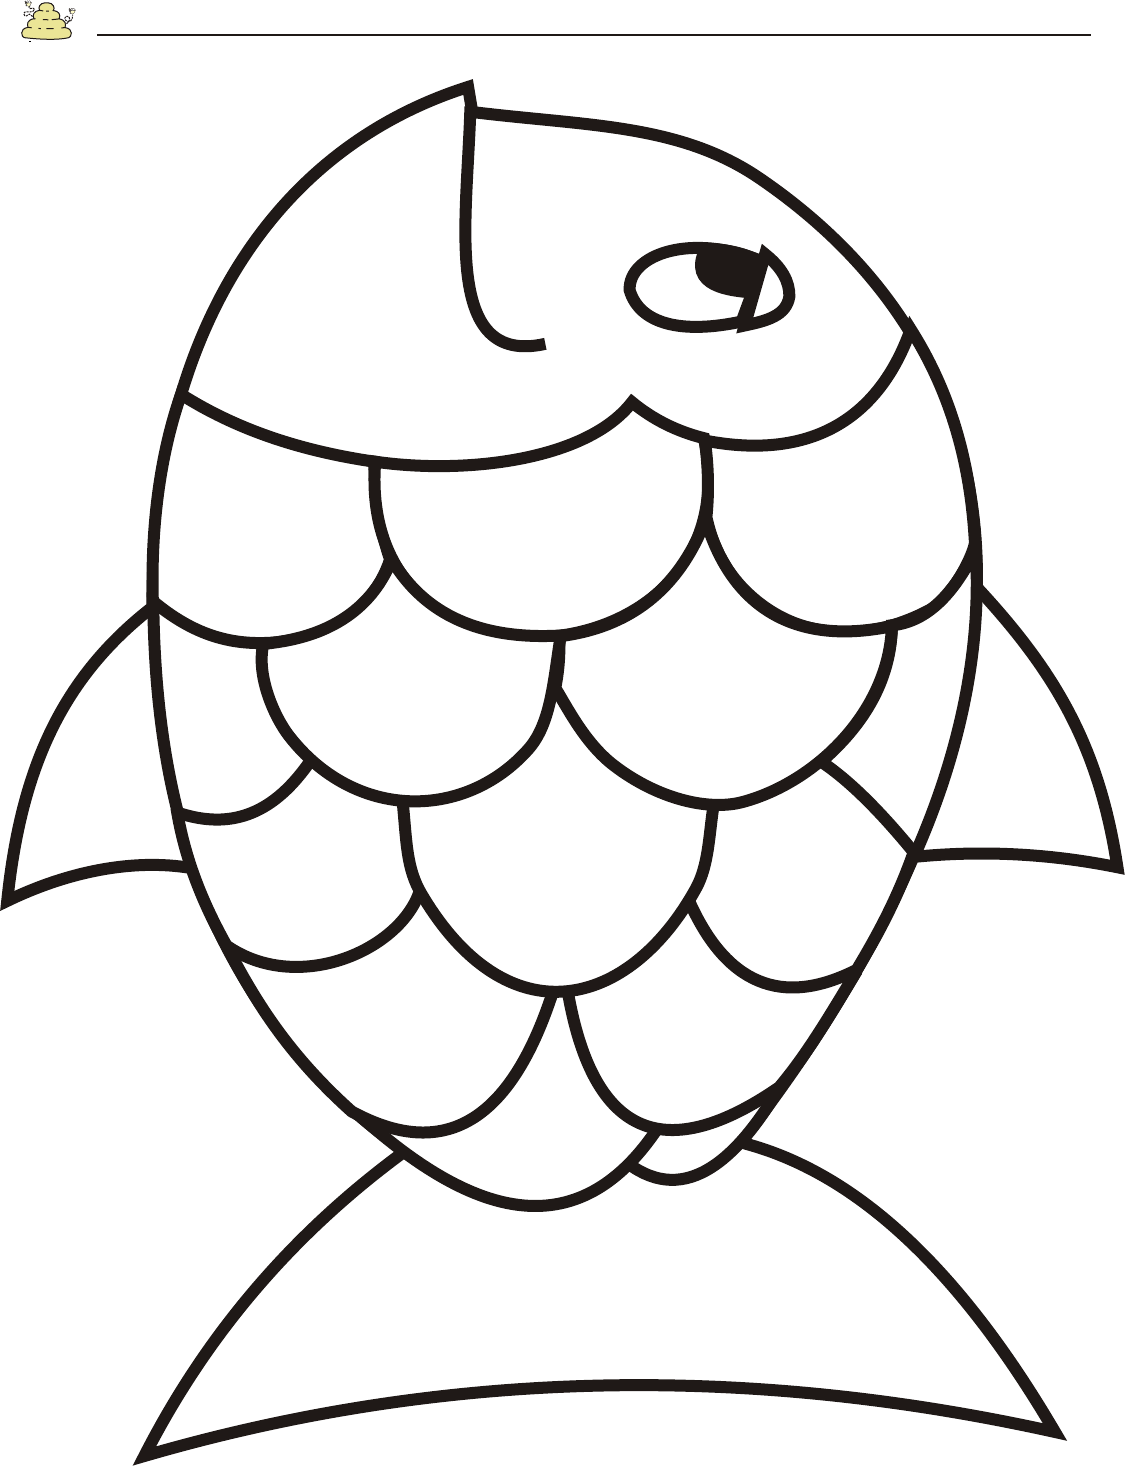 Free Rainbow Fish Template